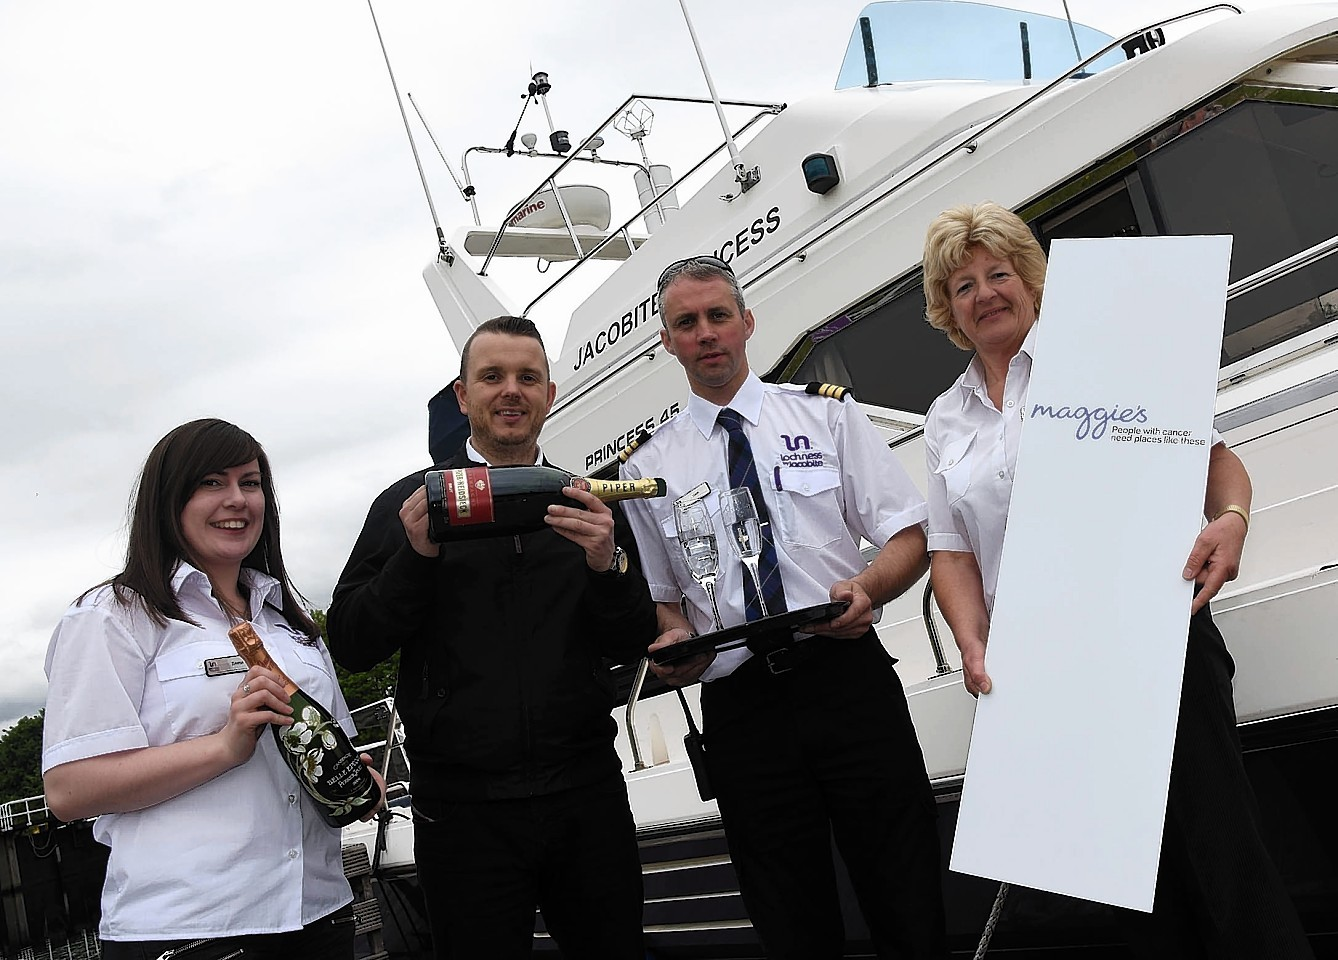 Emma Cowling,  Andrew Benjamin, Maggie's Highland with Keith Stewart, and Alison Fenton get ready for the cruise